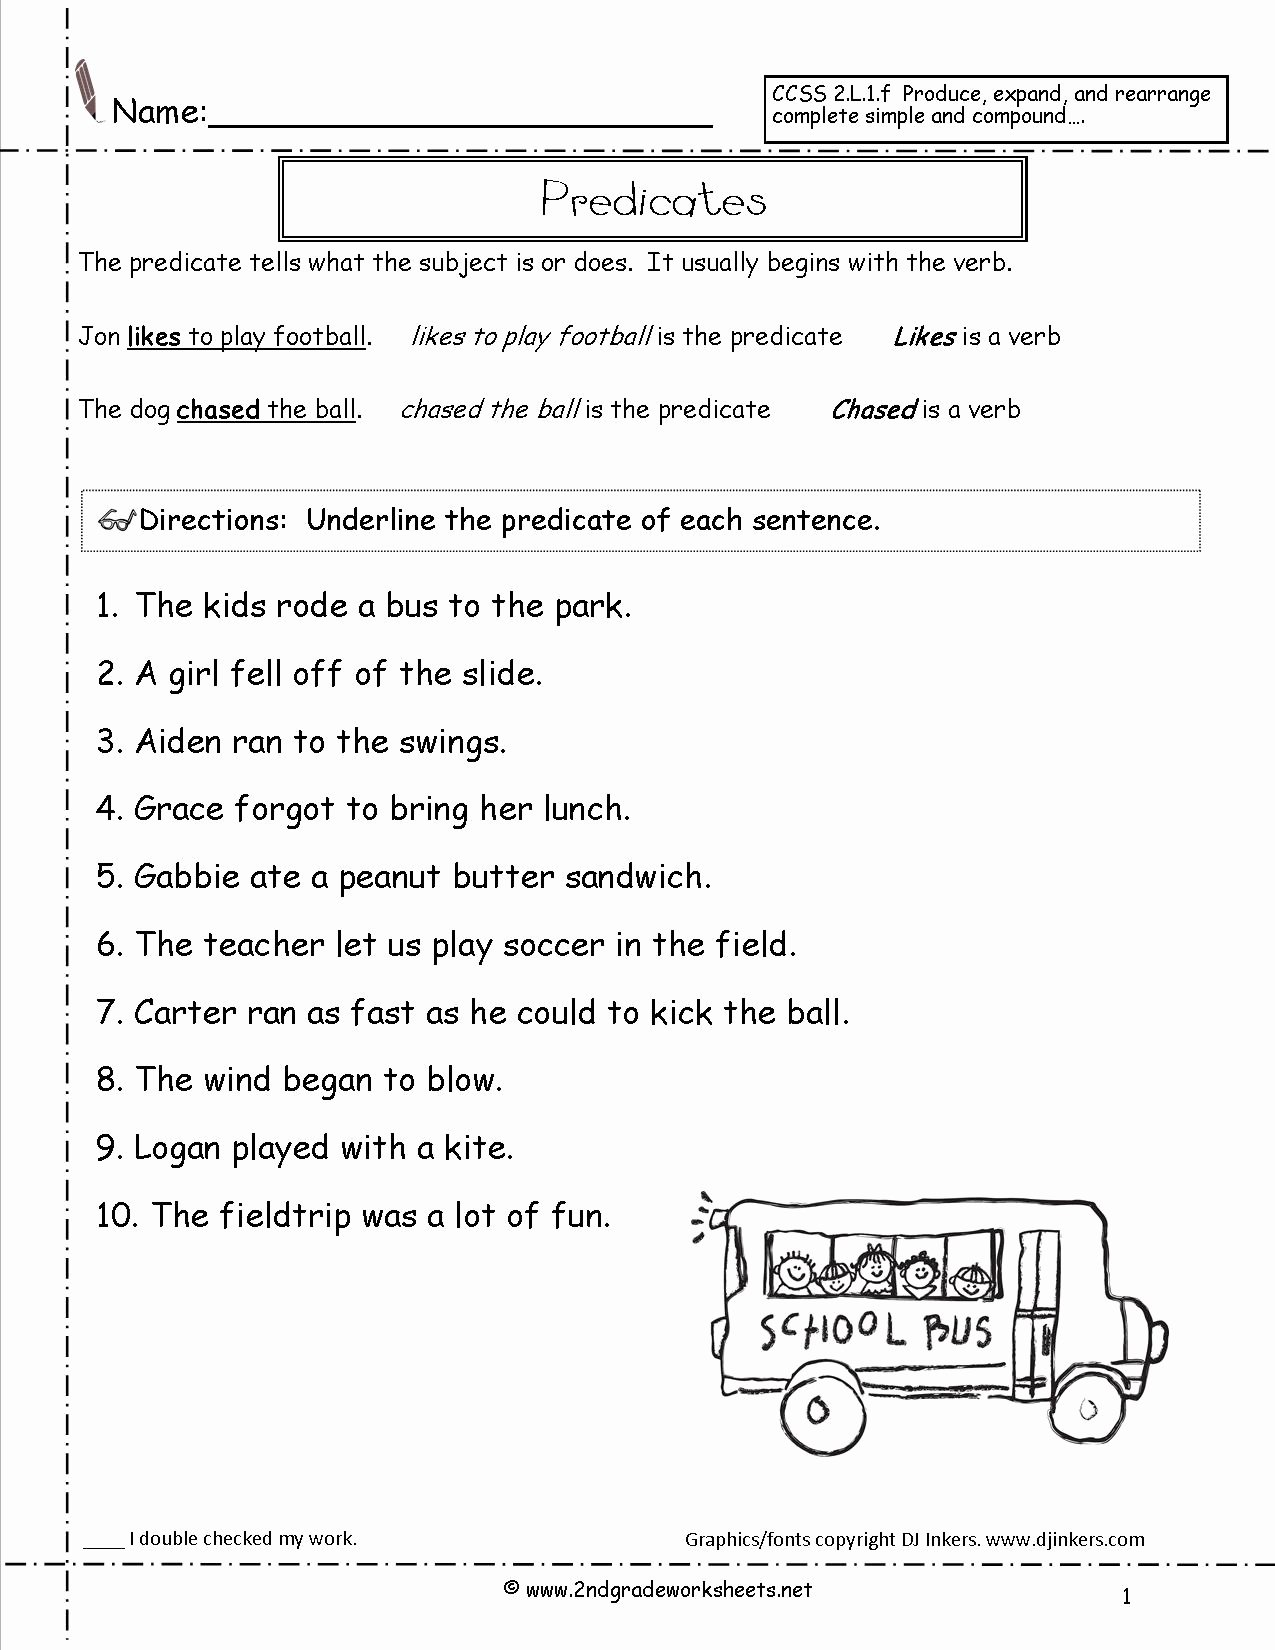 50 Subjects And Predicates Worksheet